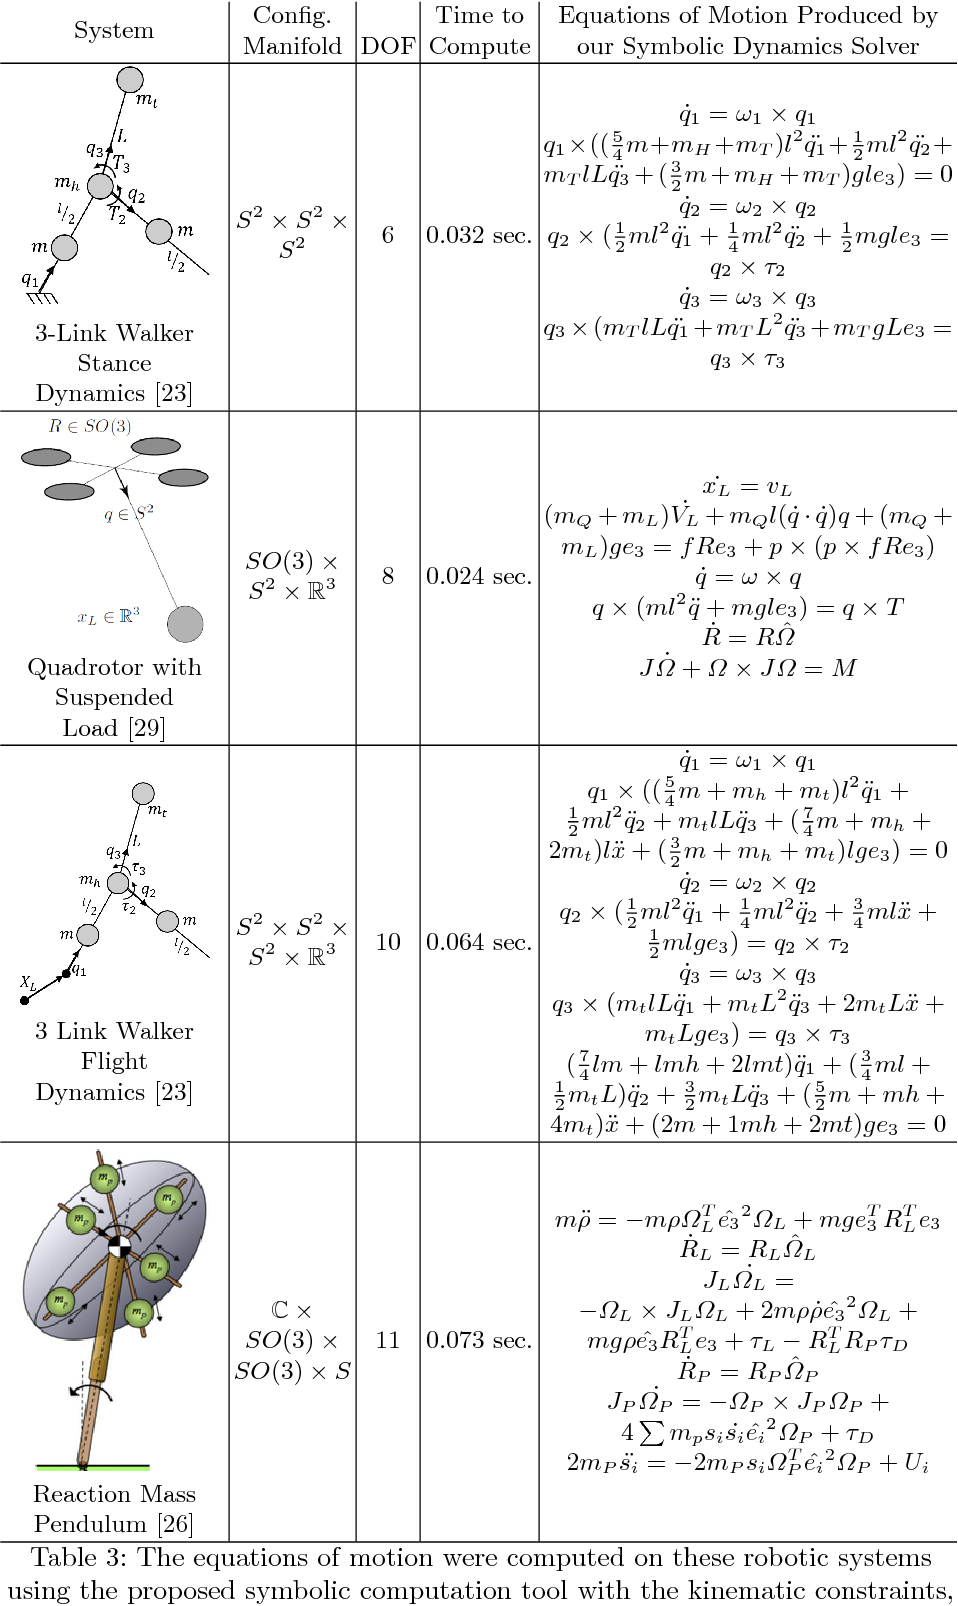 Table 3 from Symbolic Computation of Dynamics on Smooth Manifolds